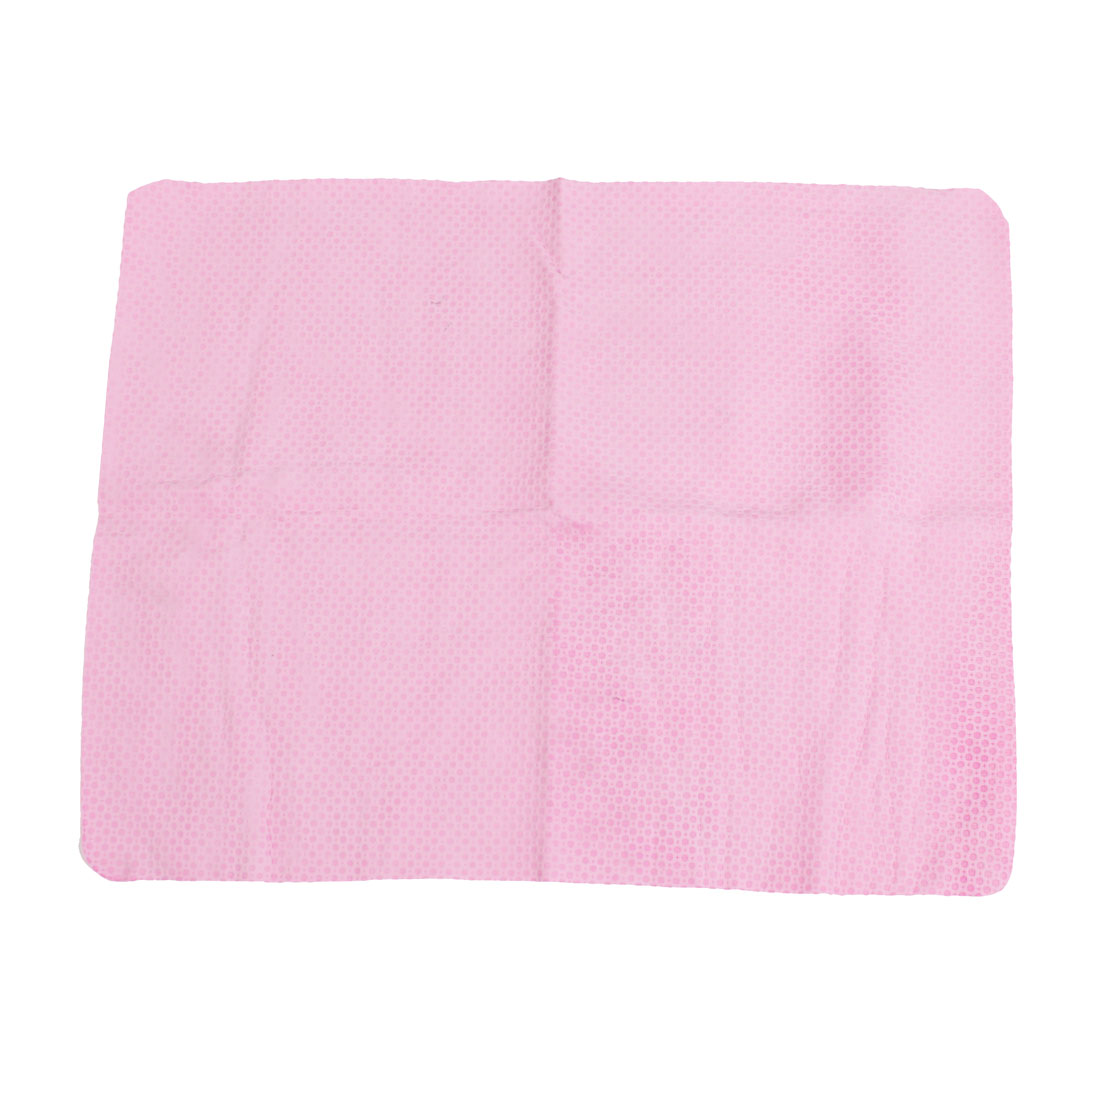 Home Furniture Car Synthetic Chamois Cleaning Cham Towel Pink 43cm x 32cm w Case